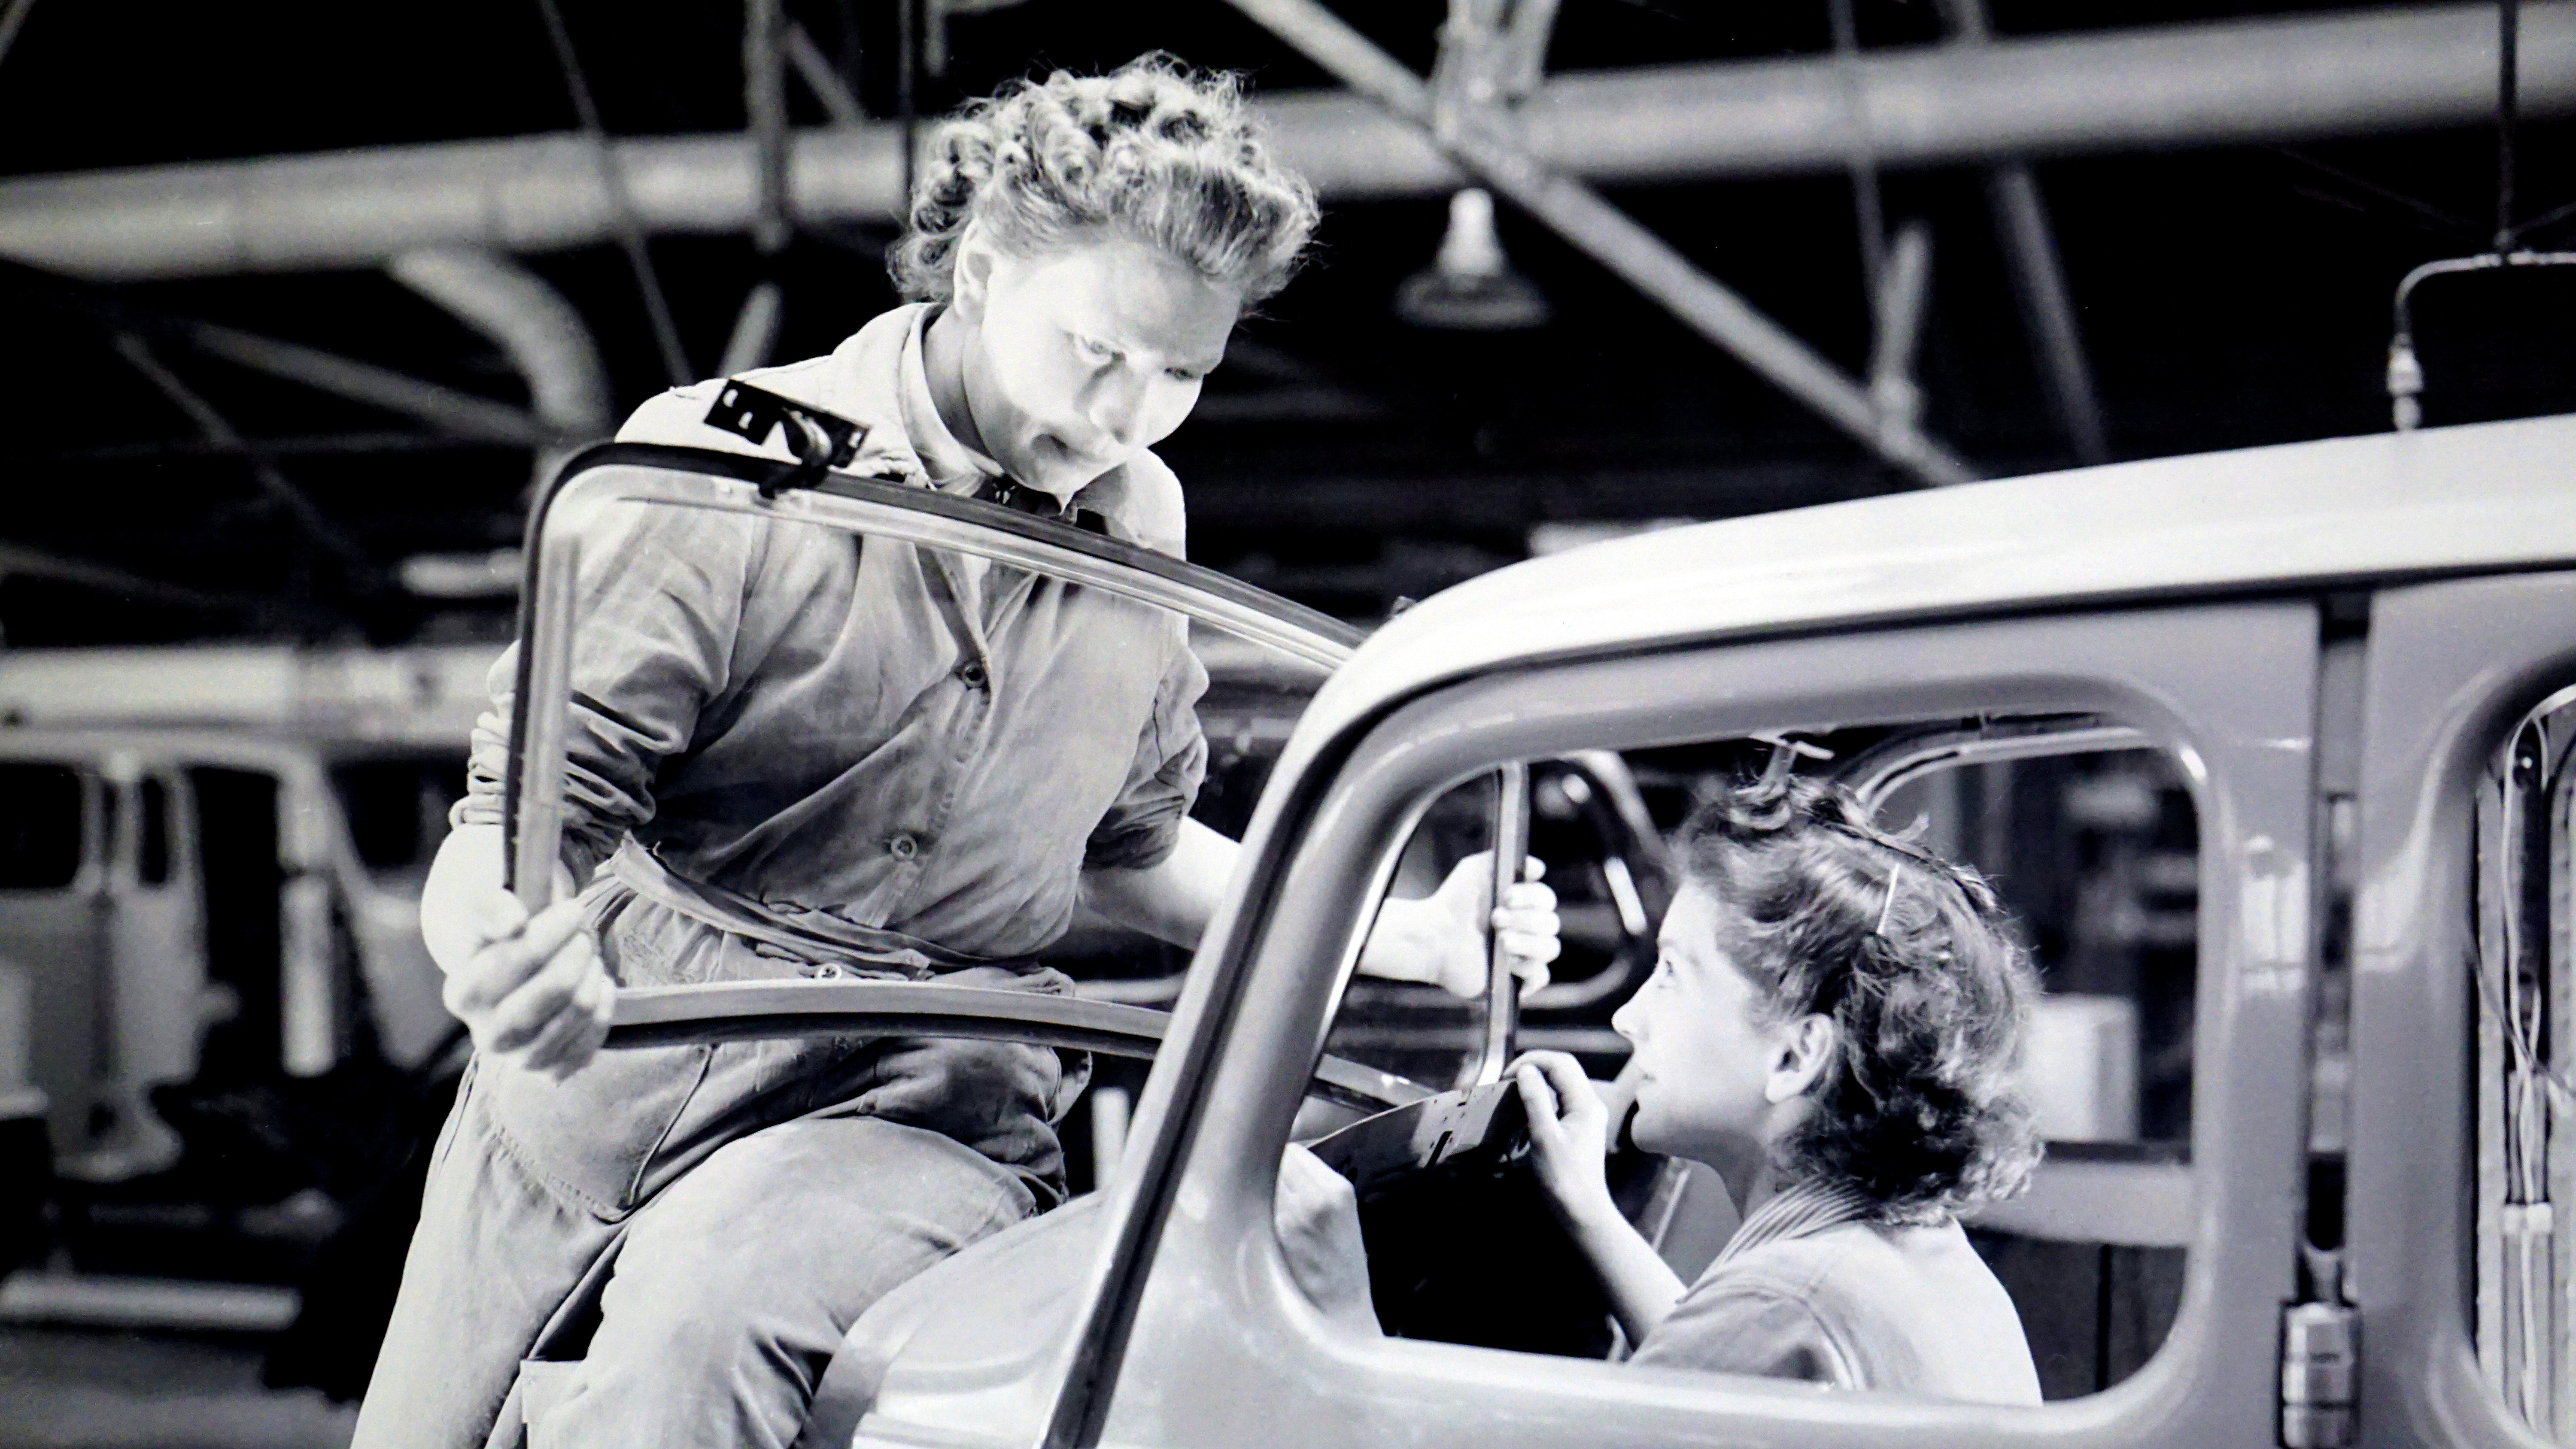 Man carrying car windshield with woman inside a car photo